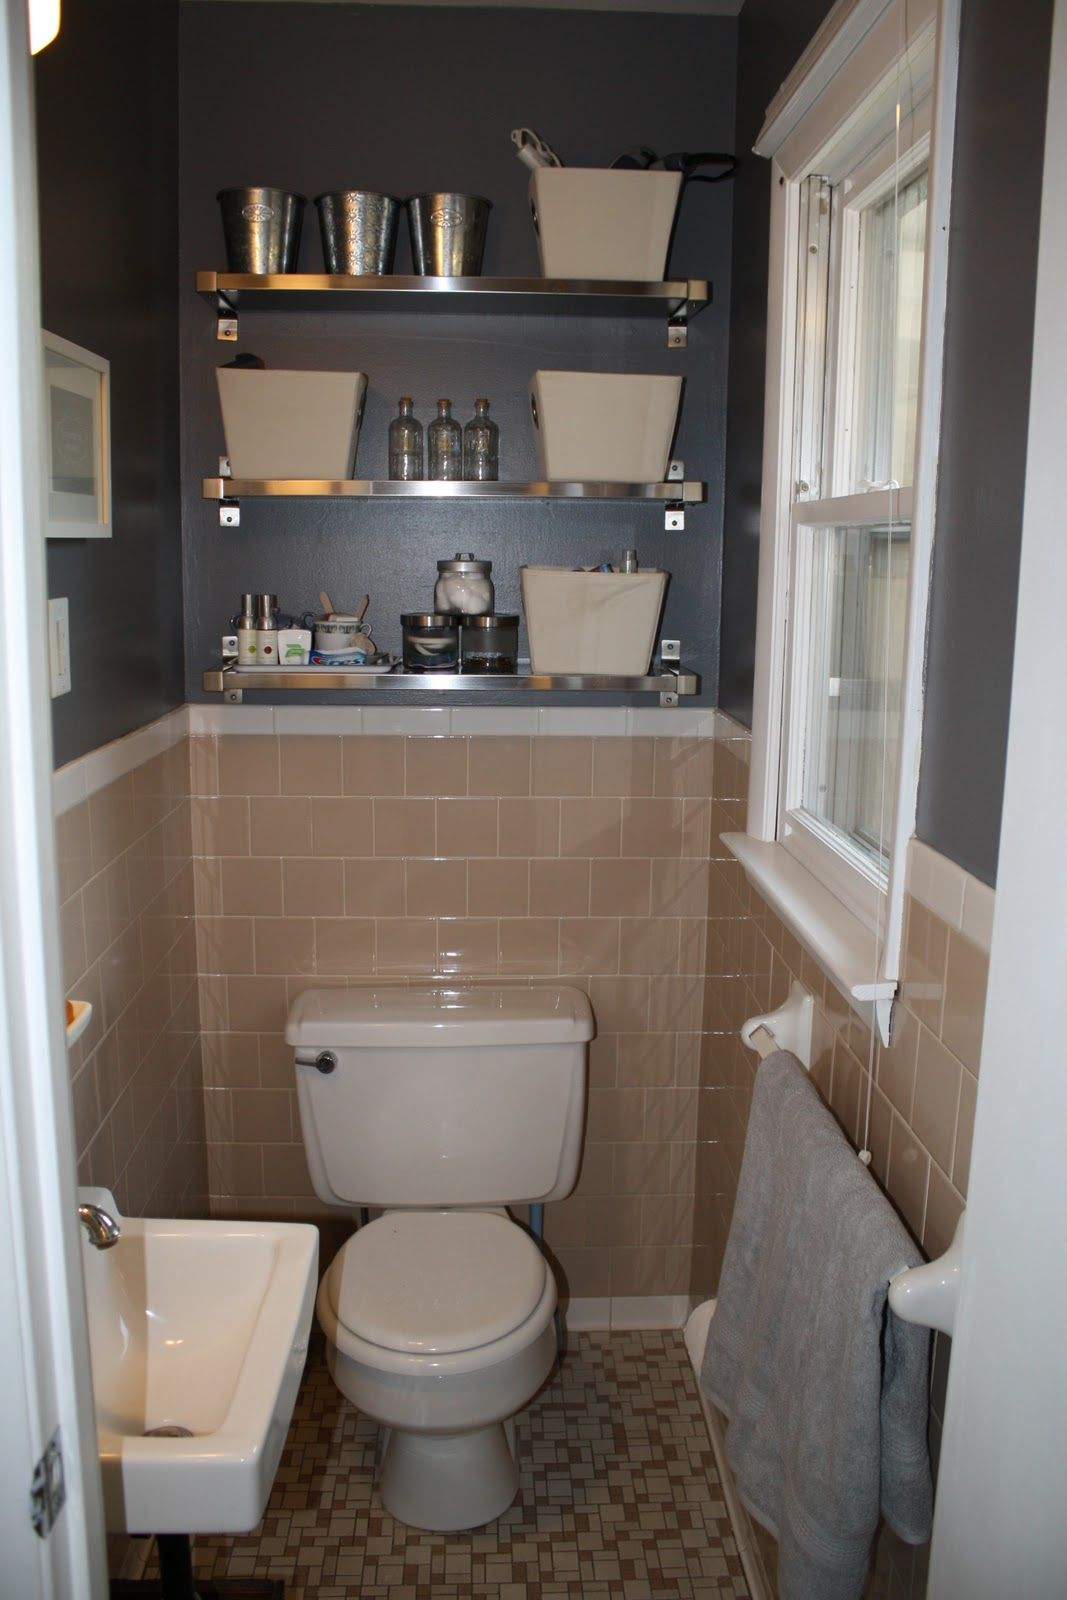 Genial Peach Tile Bathroom With Grey Walls Plus Fun Shiny Shelves In The Bathroom IKEA.  Masculine!